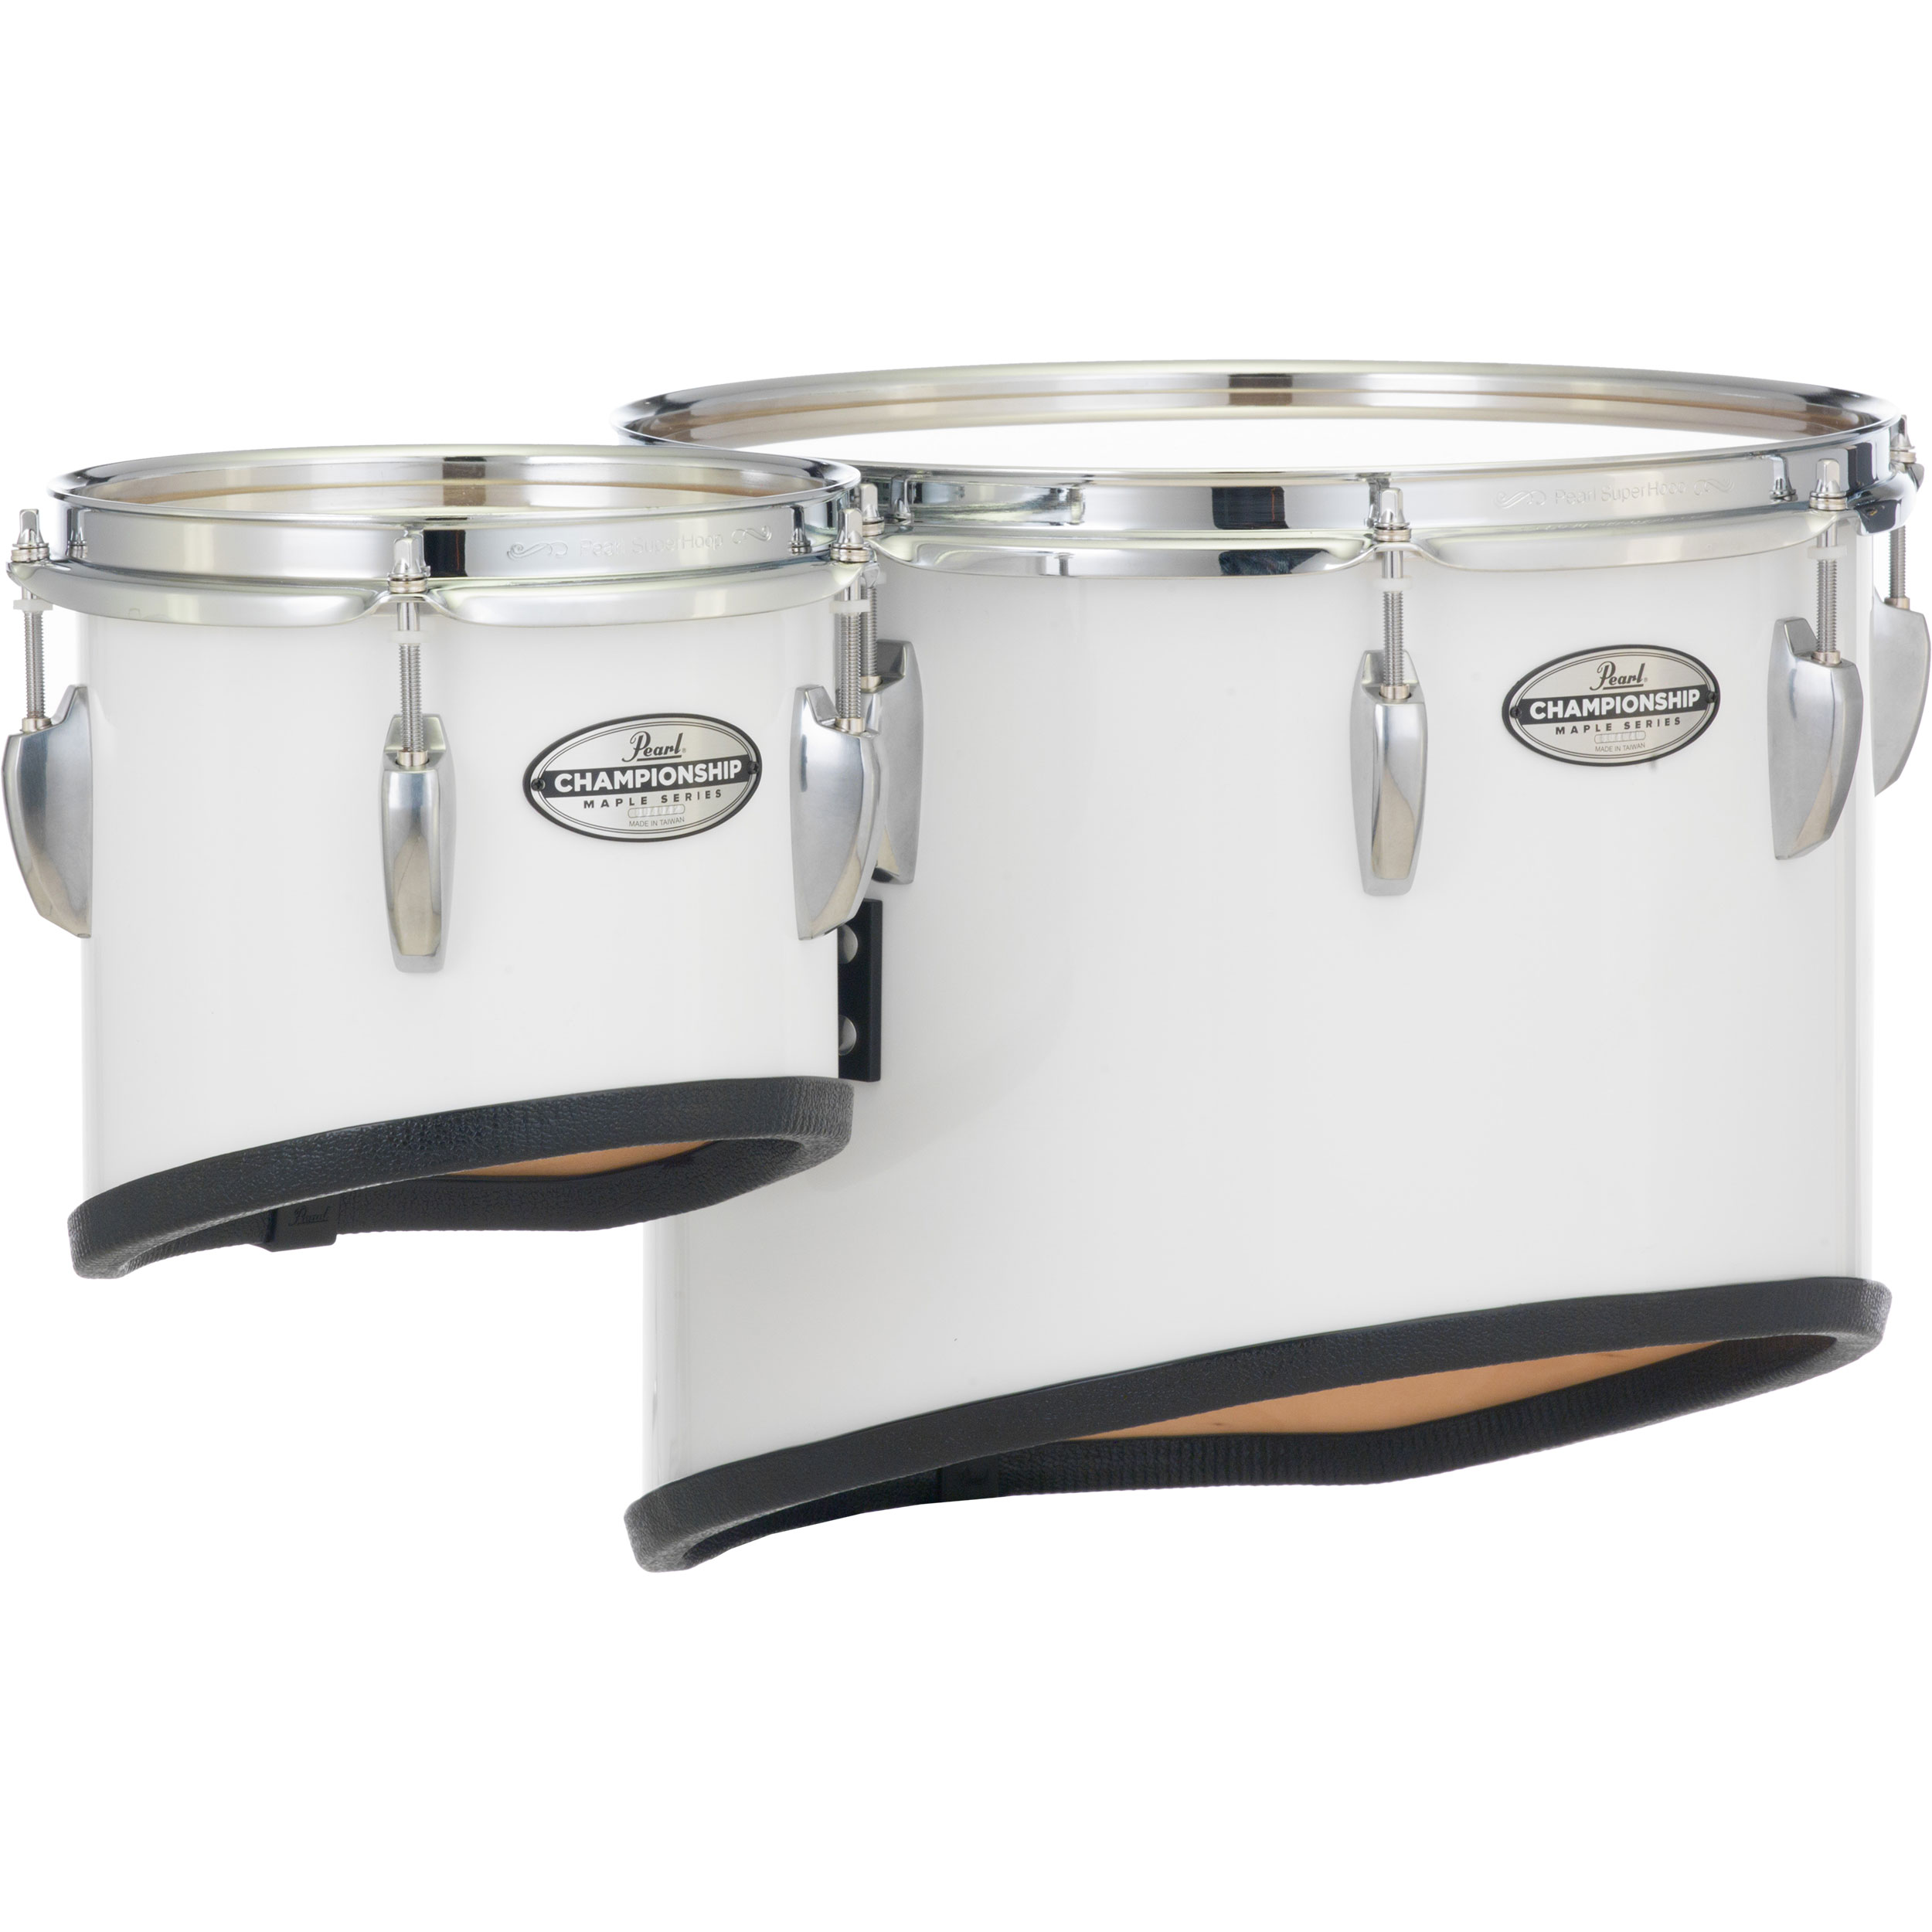 """Pearl 14""""-8"""" Championship Maple Sonic Cut Single Tenor Set with Mounts for CXS1 Carrier with Aluminum Hardware (Specify Finish)"""